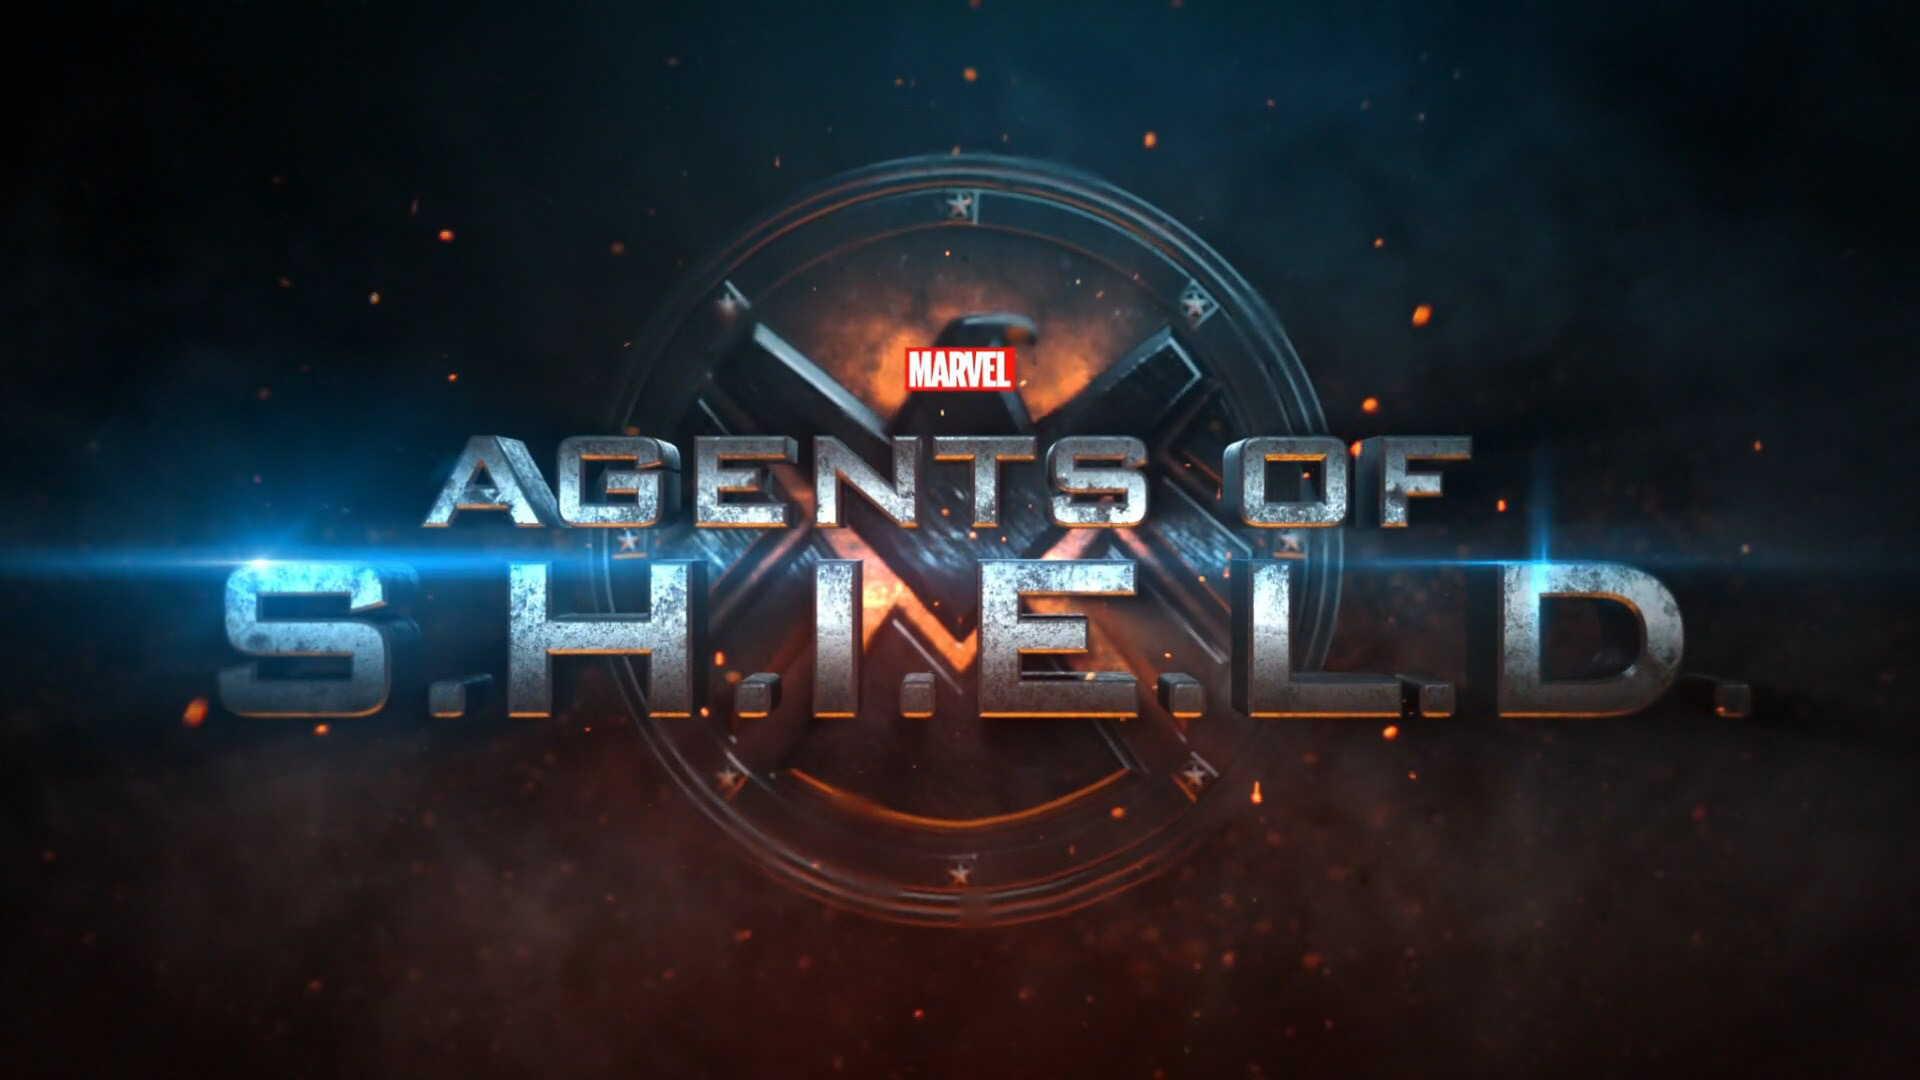 How Marvels Agents Of Shield Season 5 Will Connect The Show To MCU